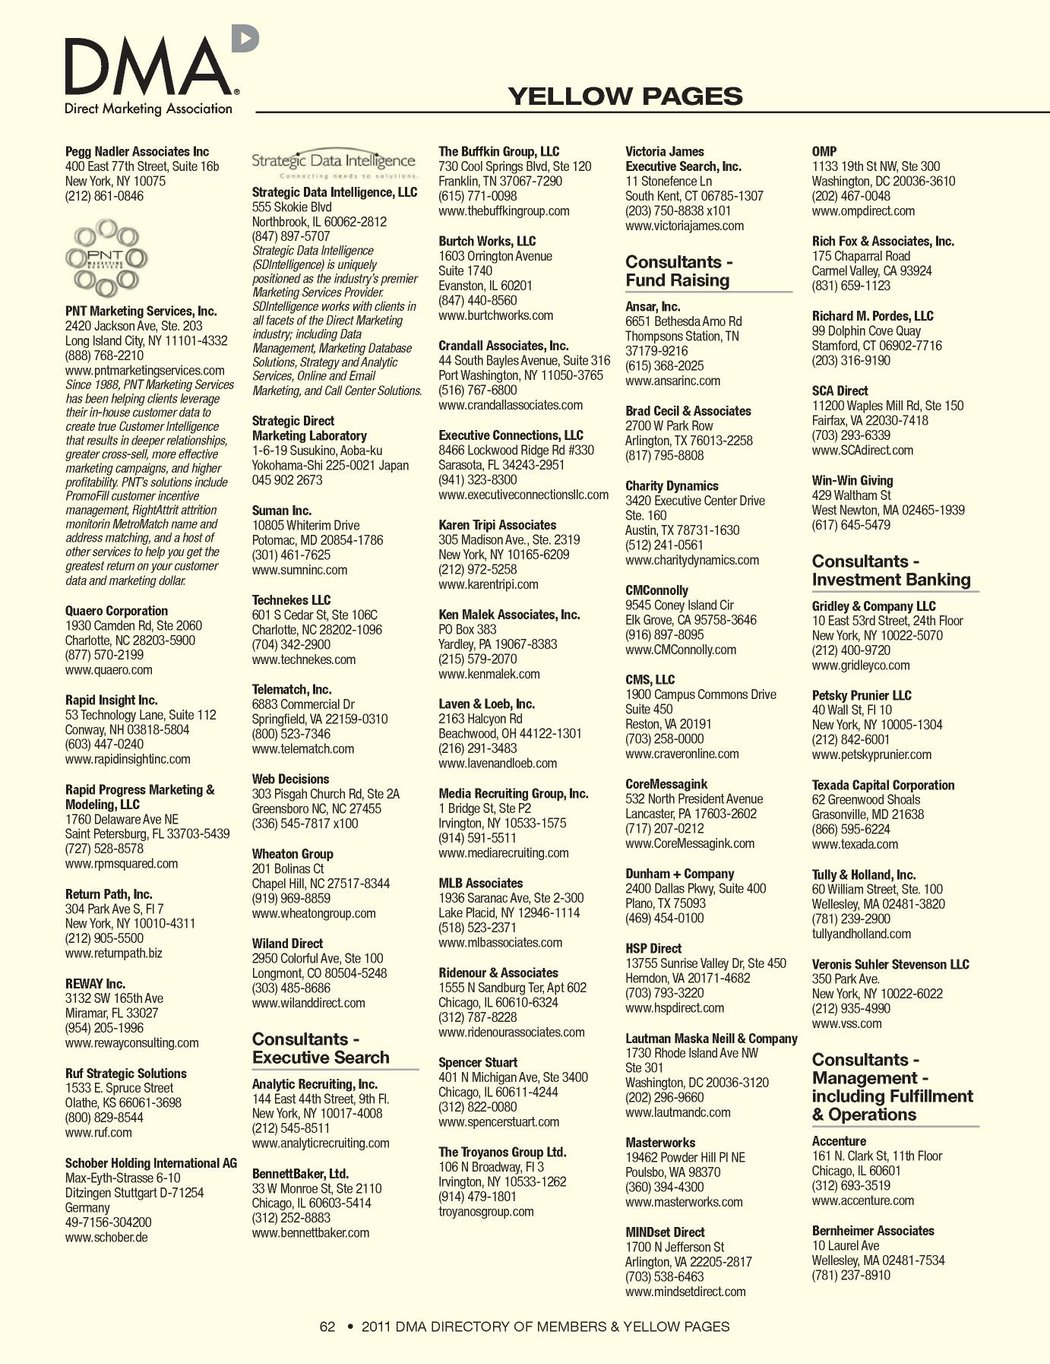 DMA 2011 Directory of Members & Yellow Pages